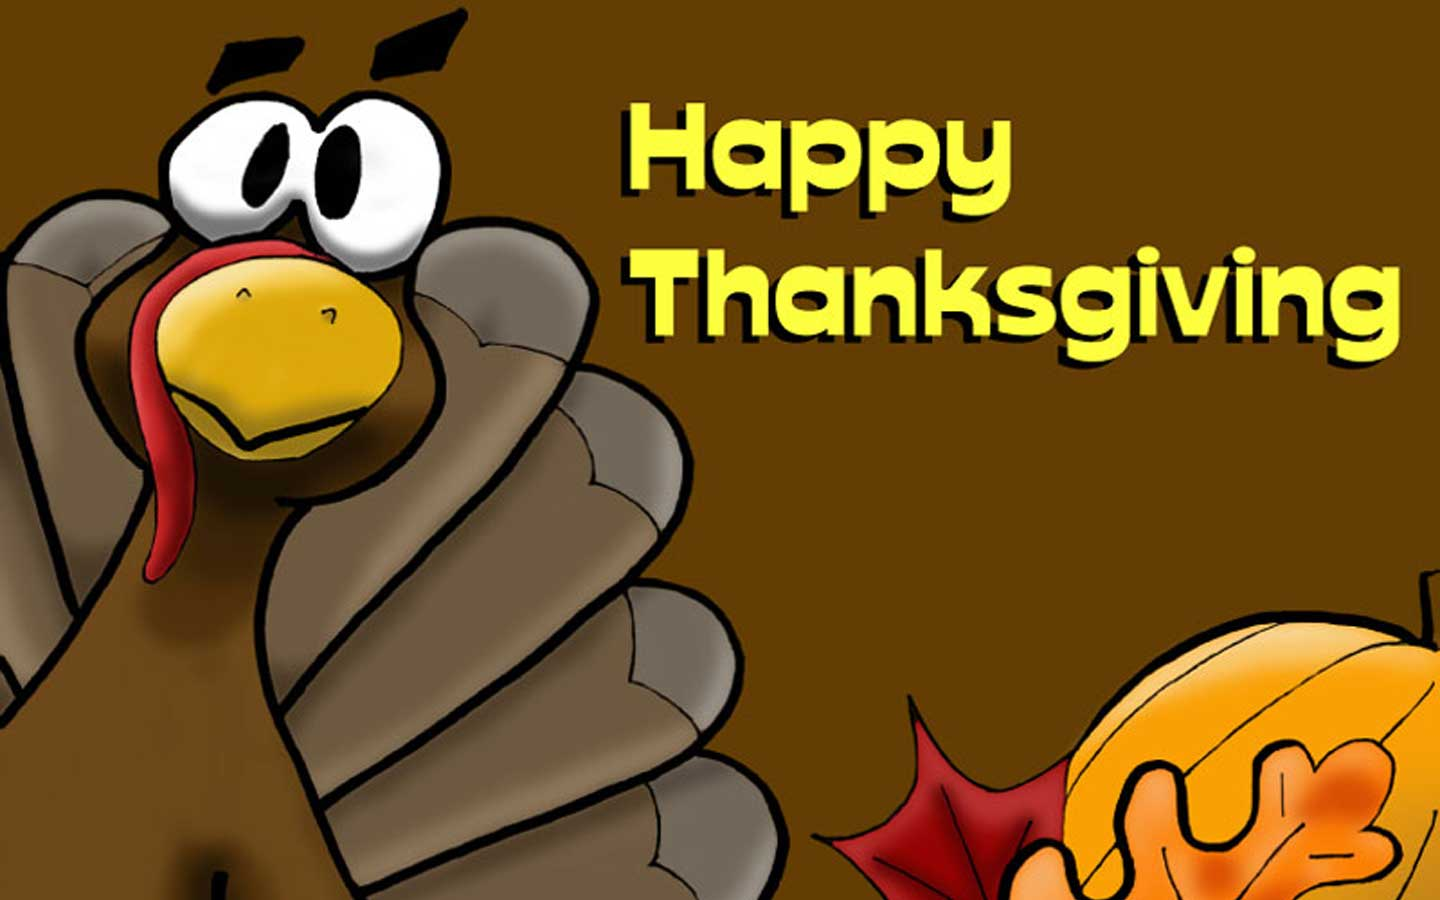 Thanksgiving Day 2012   Funny HD Thanksgiving Wallpapers 1440x900